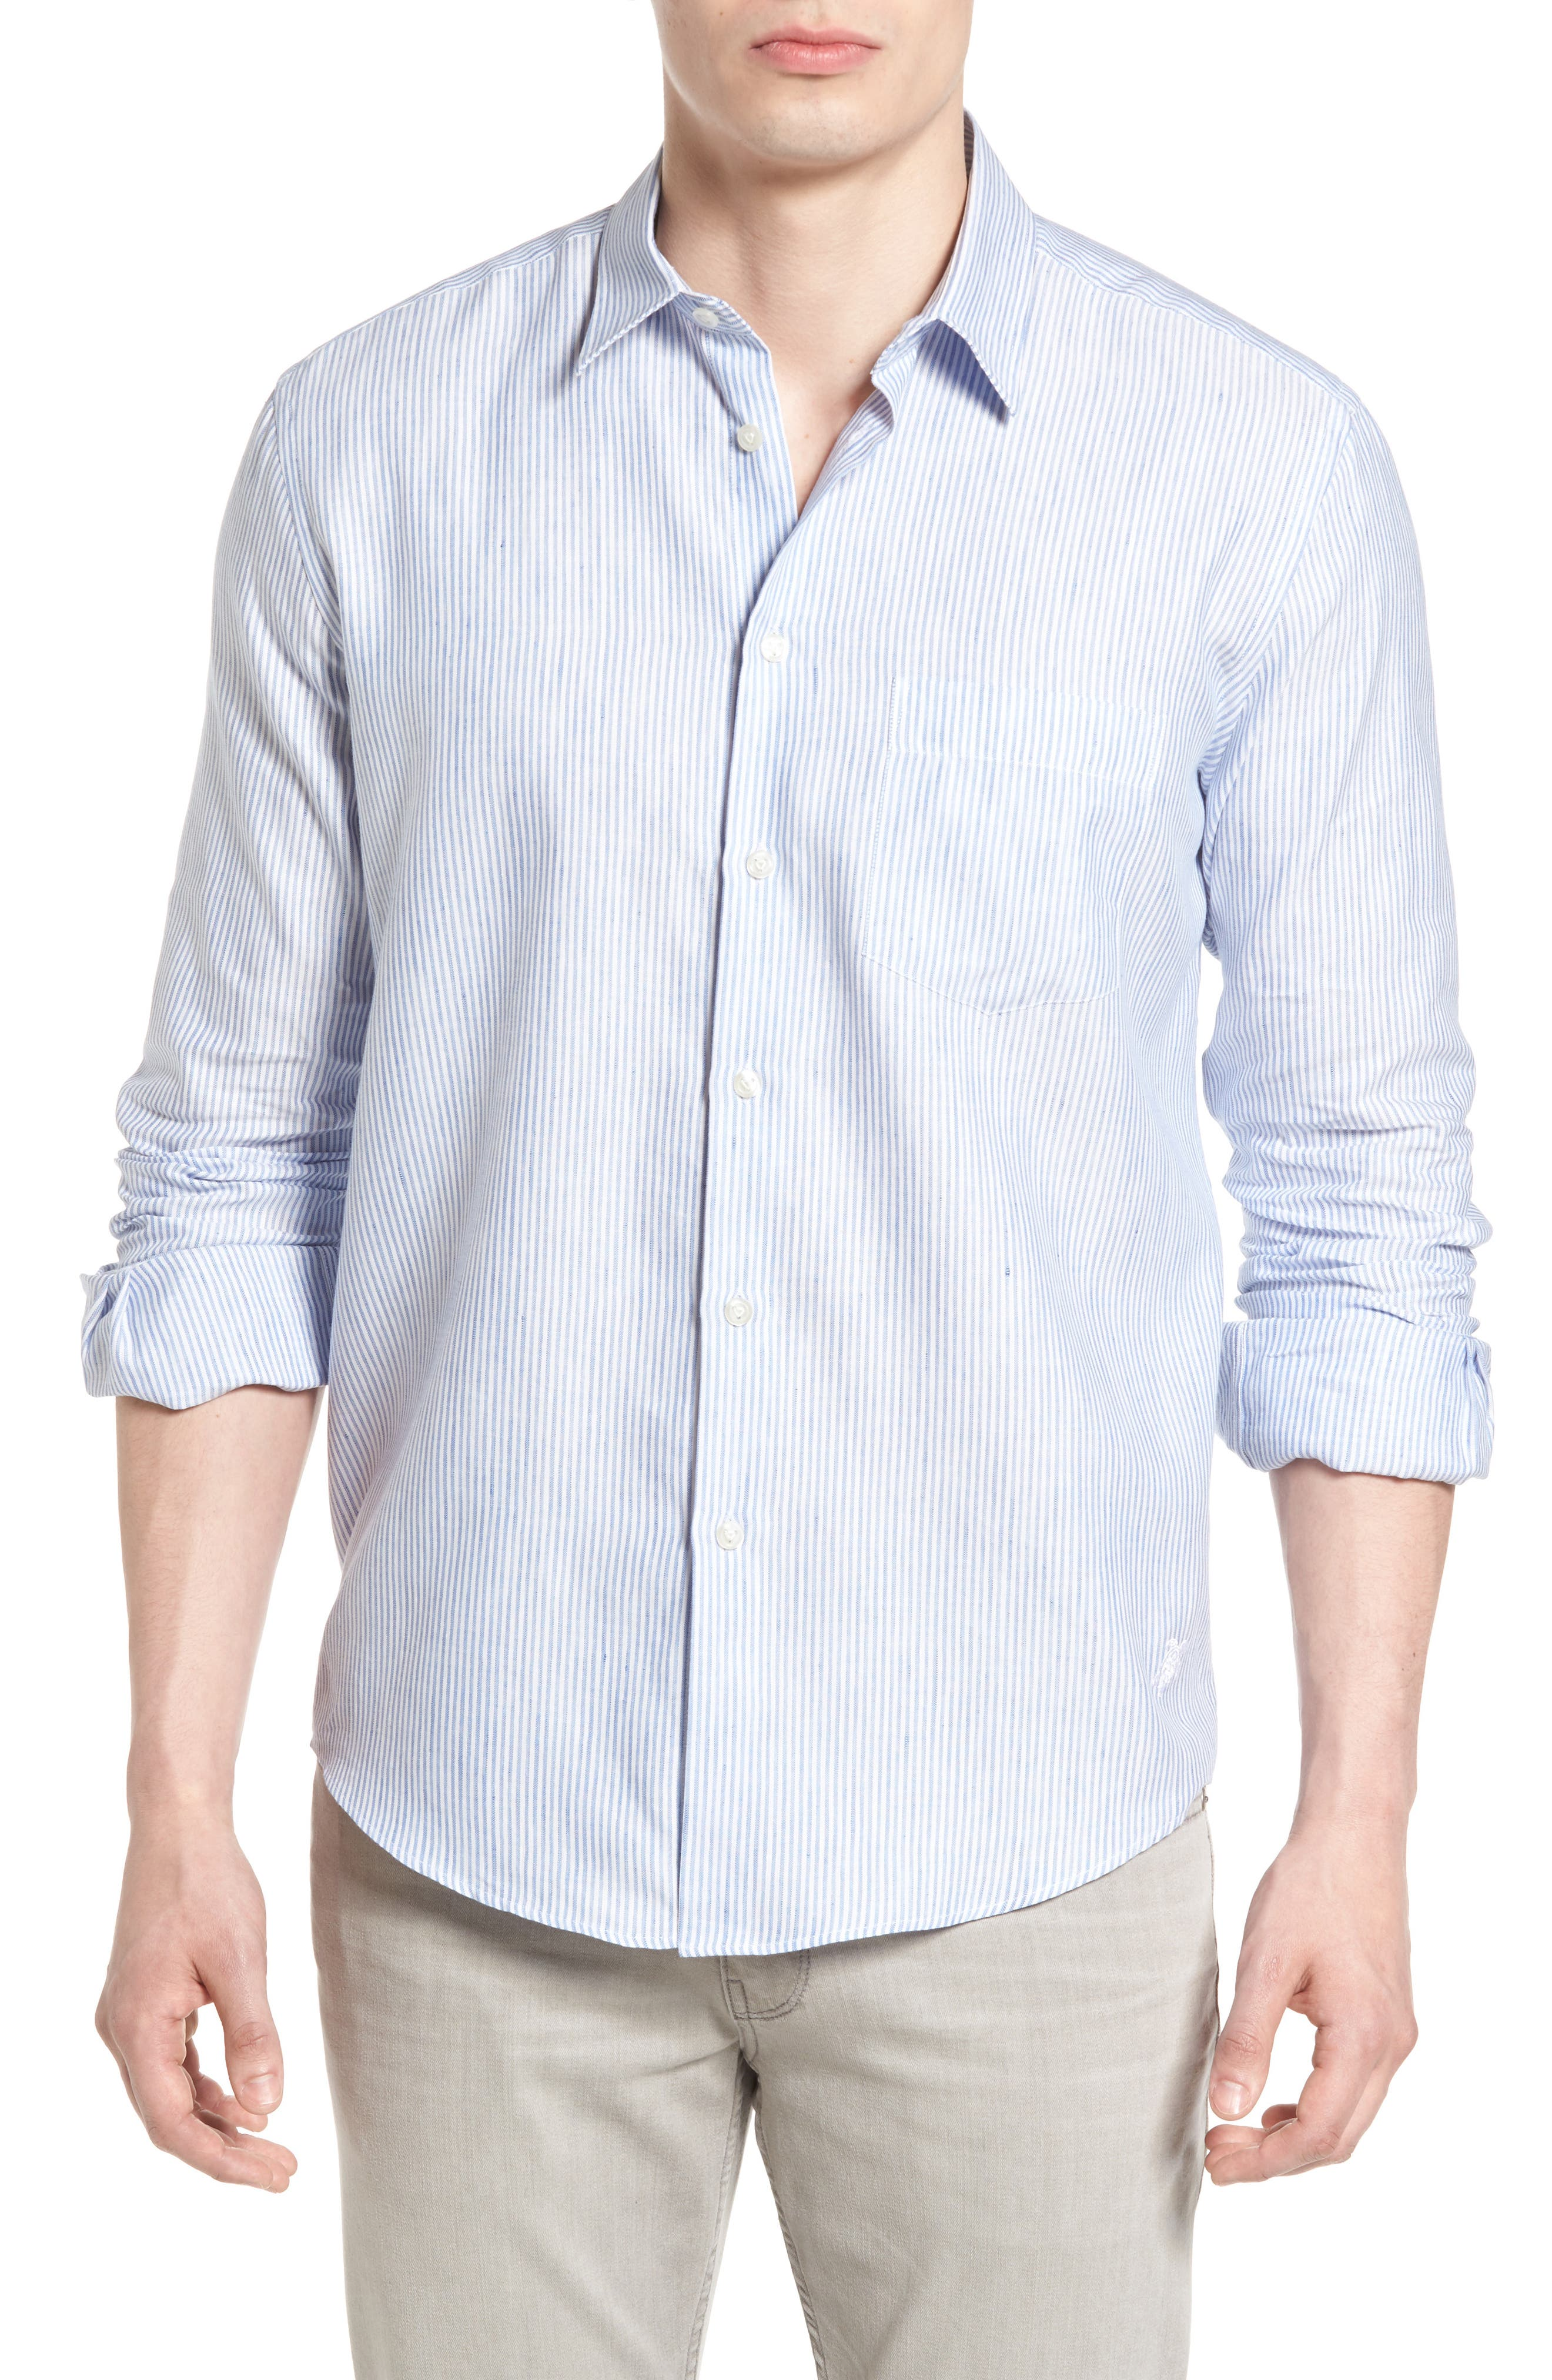 Alternate Image 1 Selected - Vilebrequin Stripe Linen Blend Sport Shirt